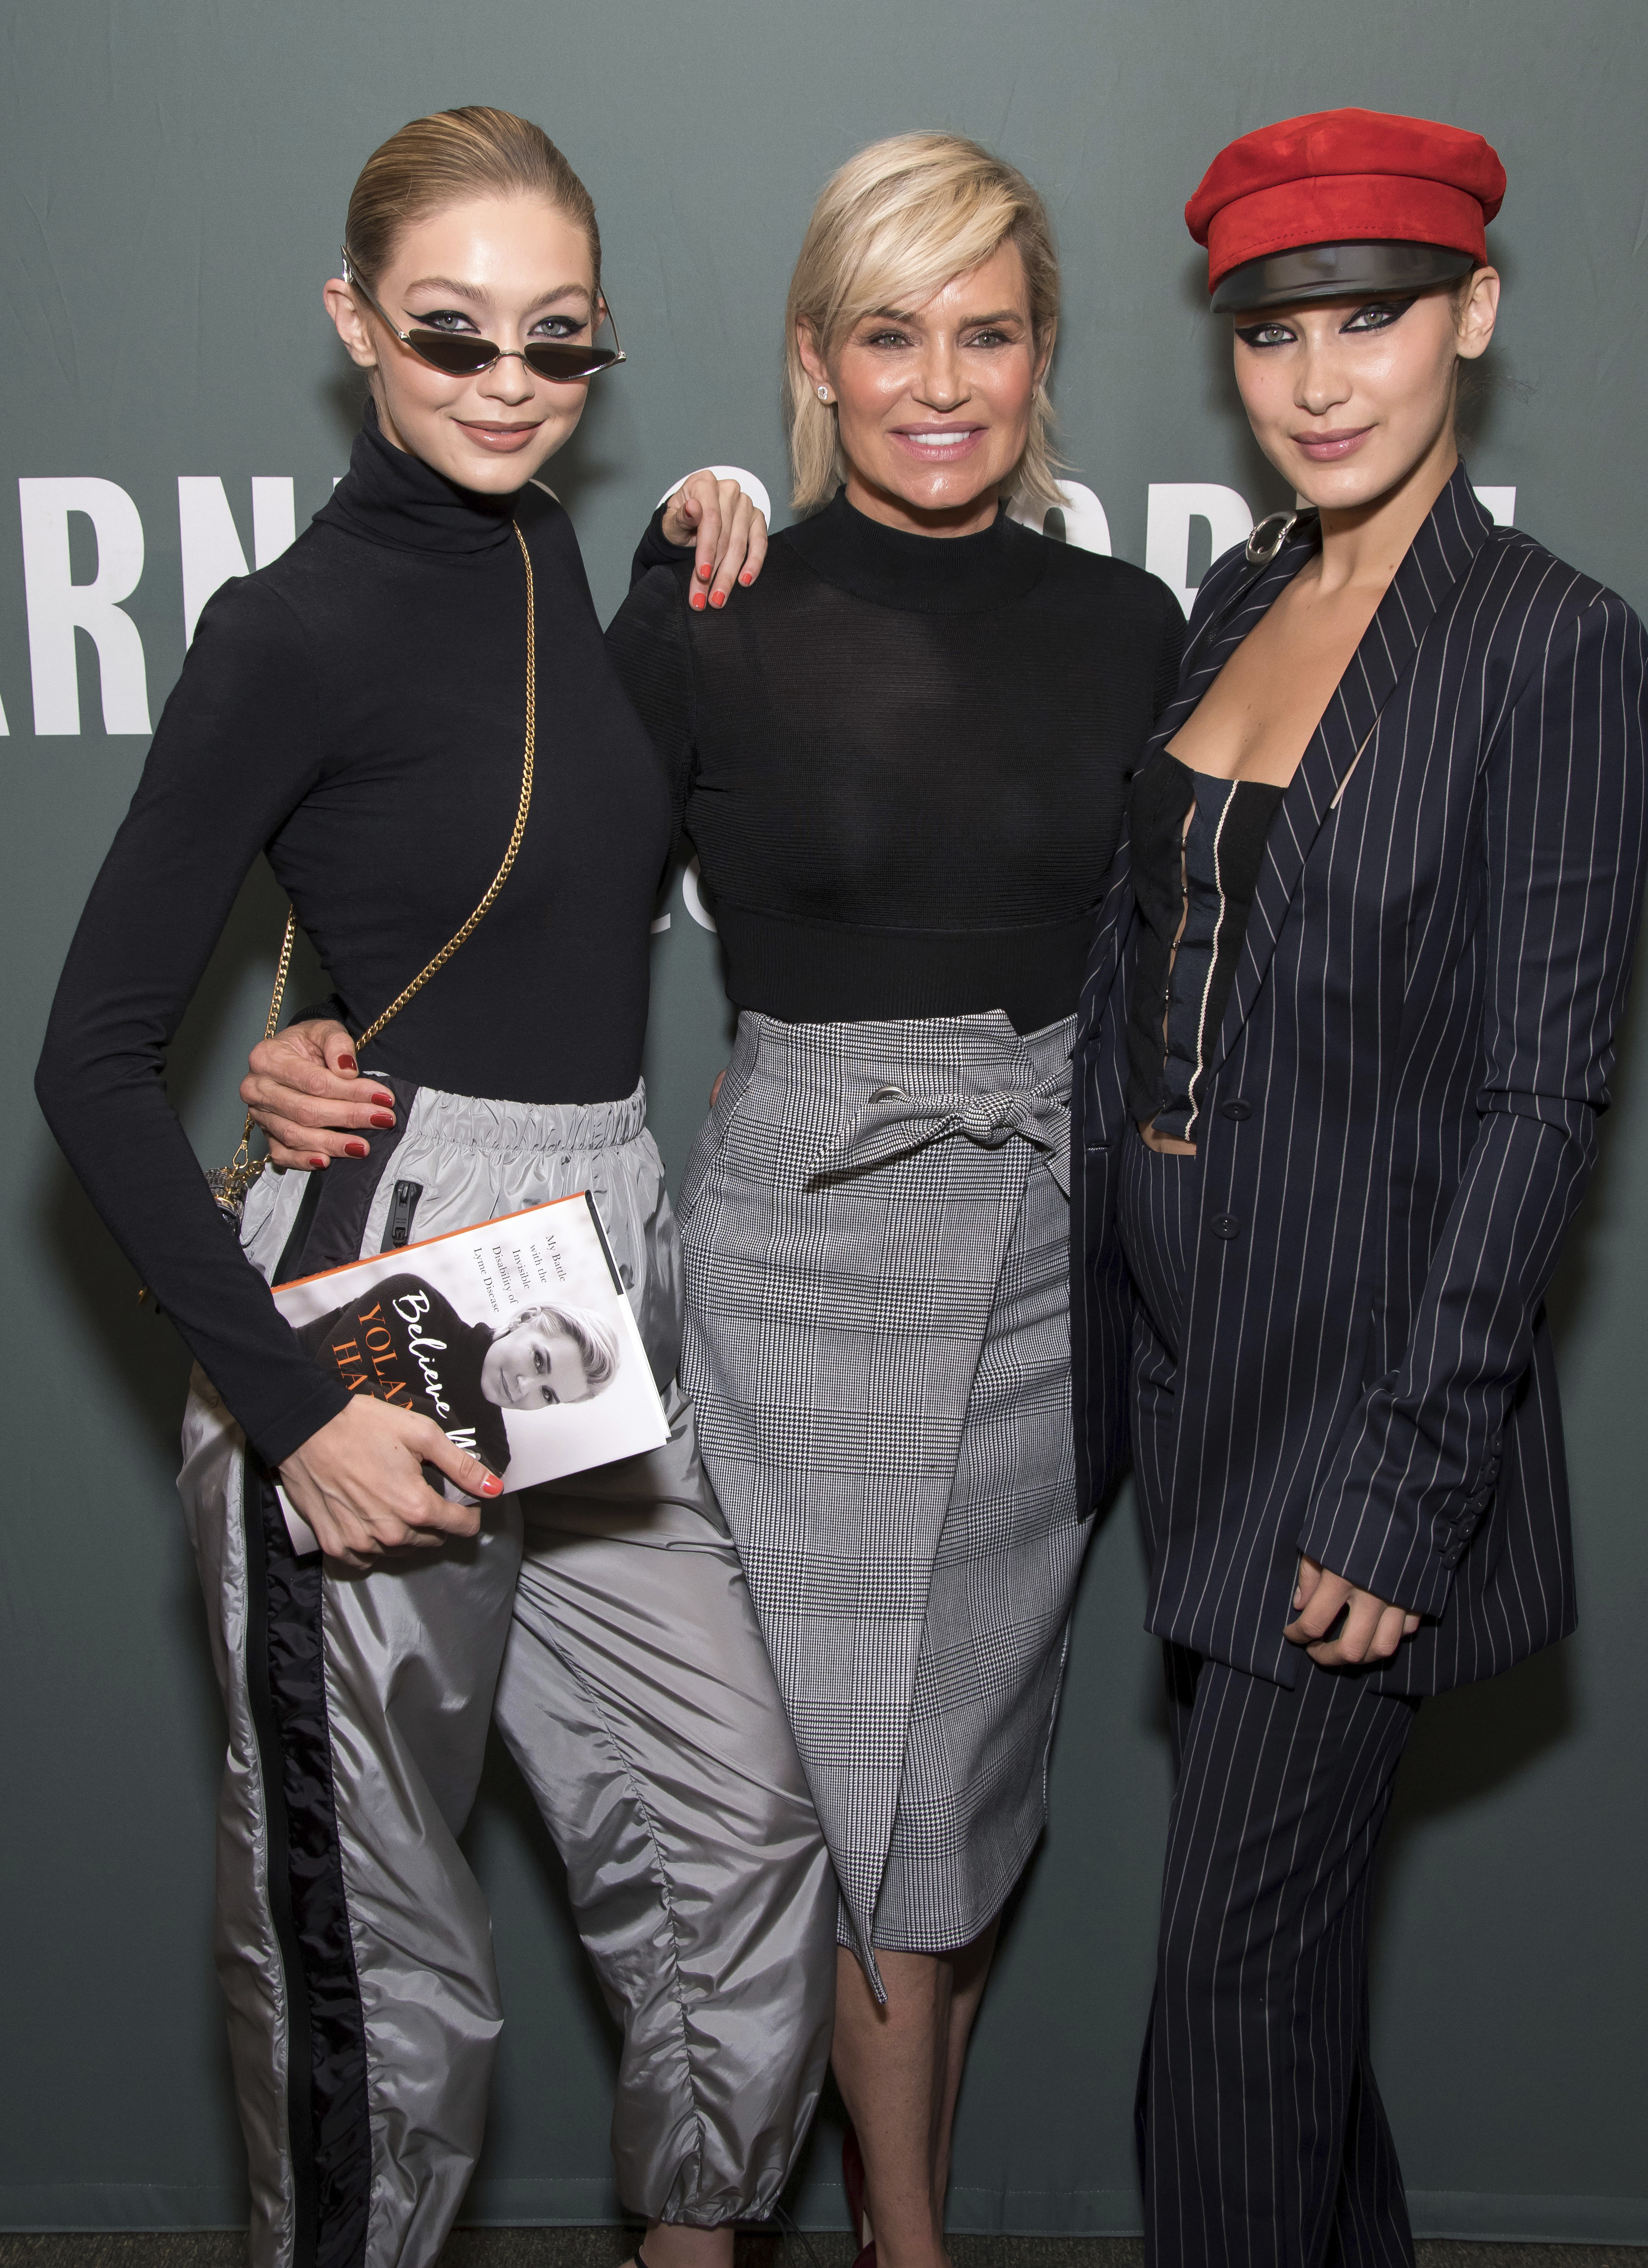 """Gigi Hadid, left, Yolanda Hadid and Bella Hadid attend a book signing for Yolanda's memoir """"Believe Me"""" at Barnes & Noble on Wednesday, Sept. 13, 2017, in New York. (Photo by Charles Sykes/Invision/AP)"""